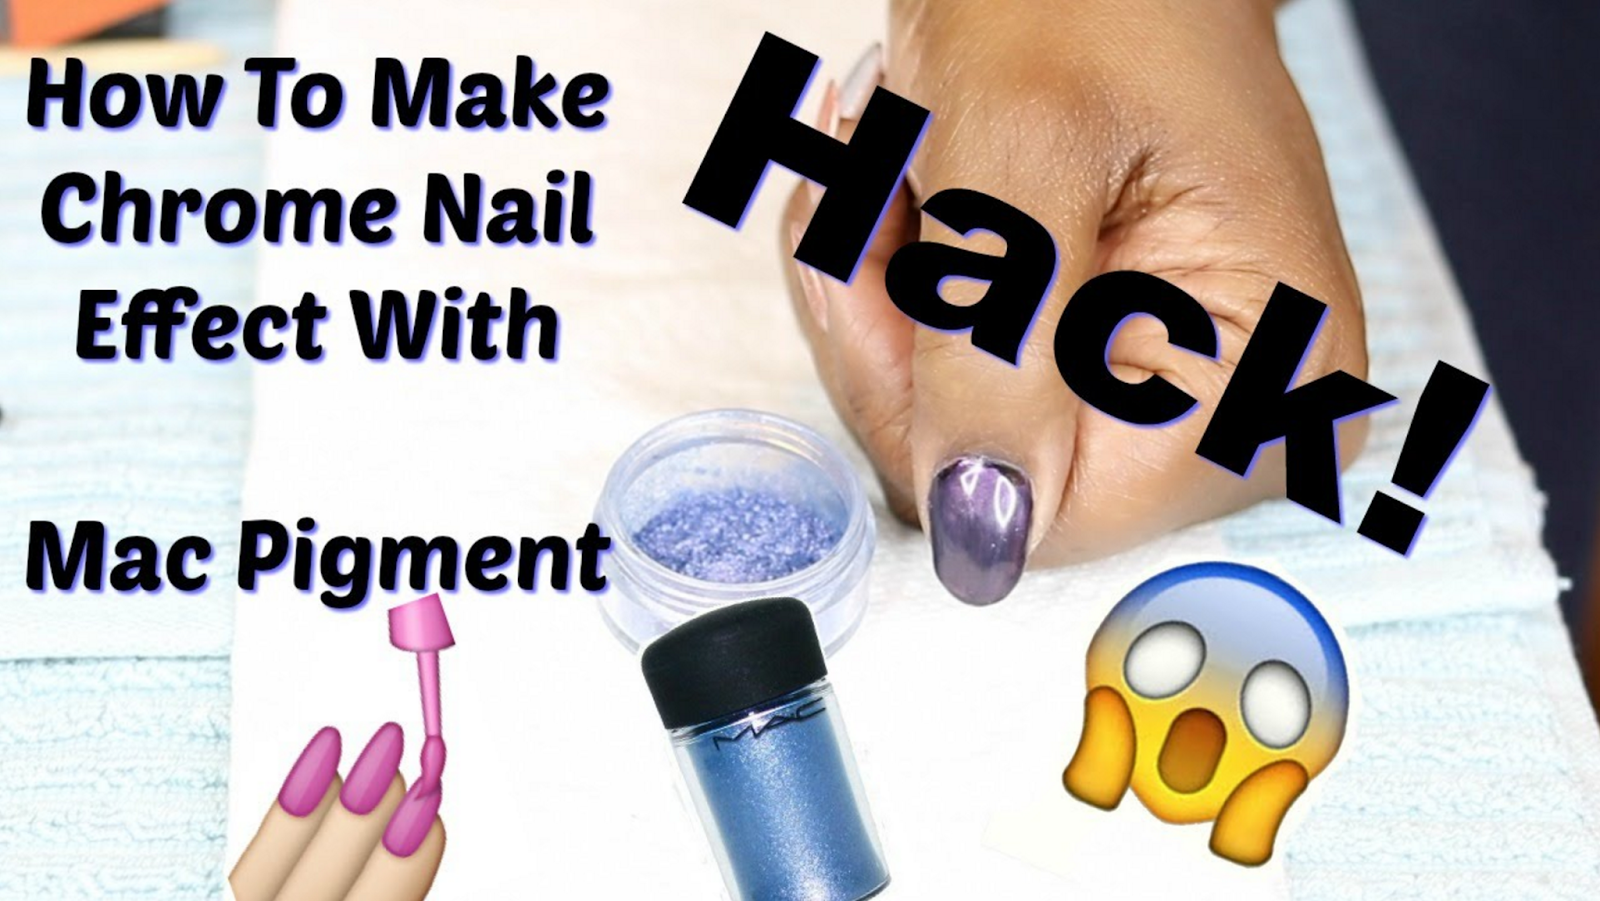 All Things Beauty Diy Hack How To Make Chrome Nail